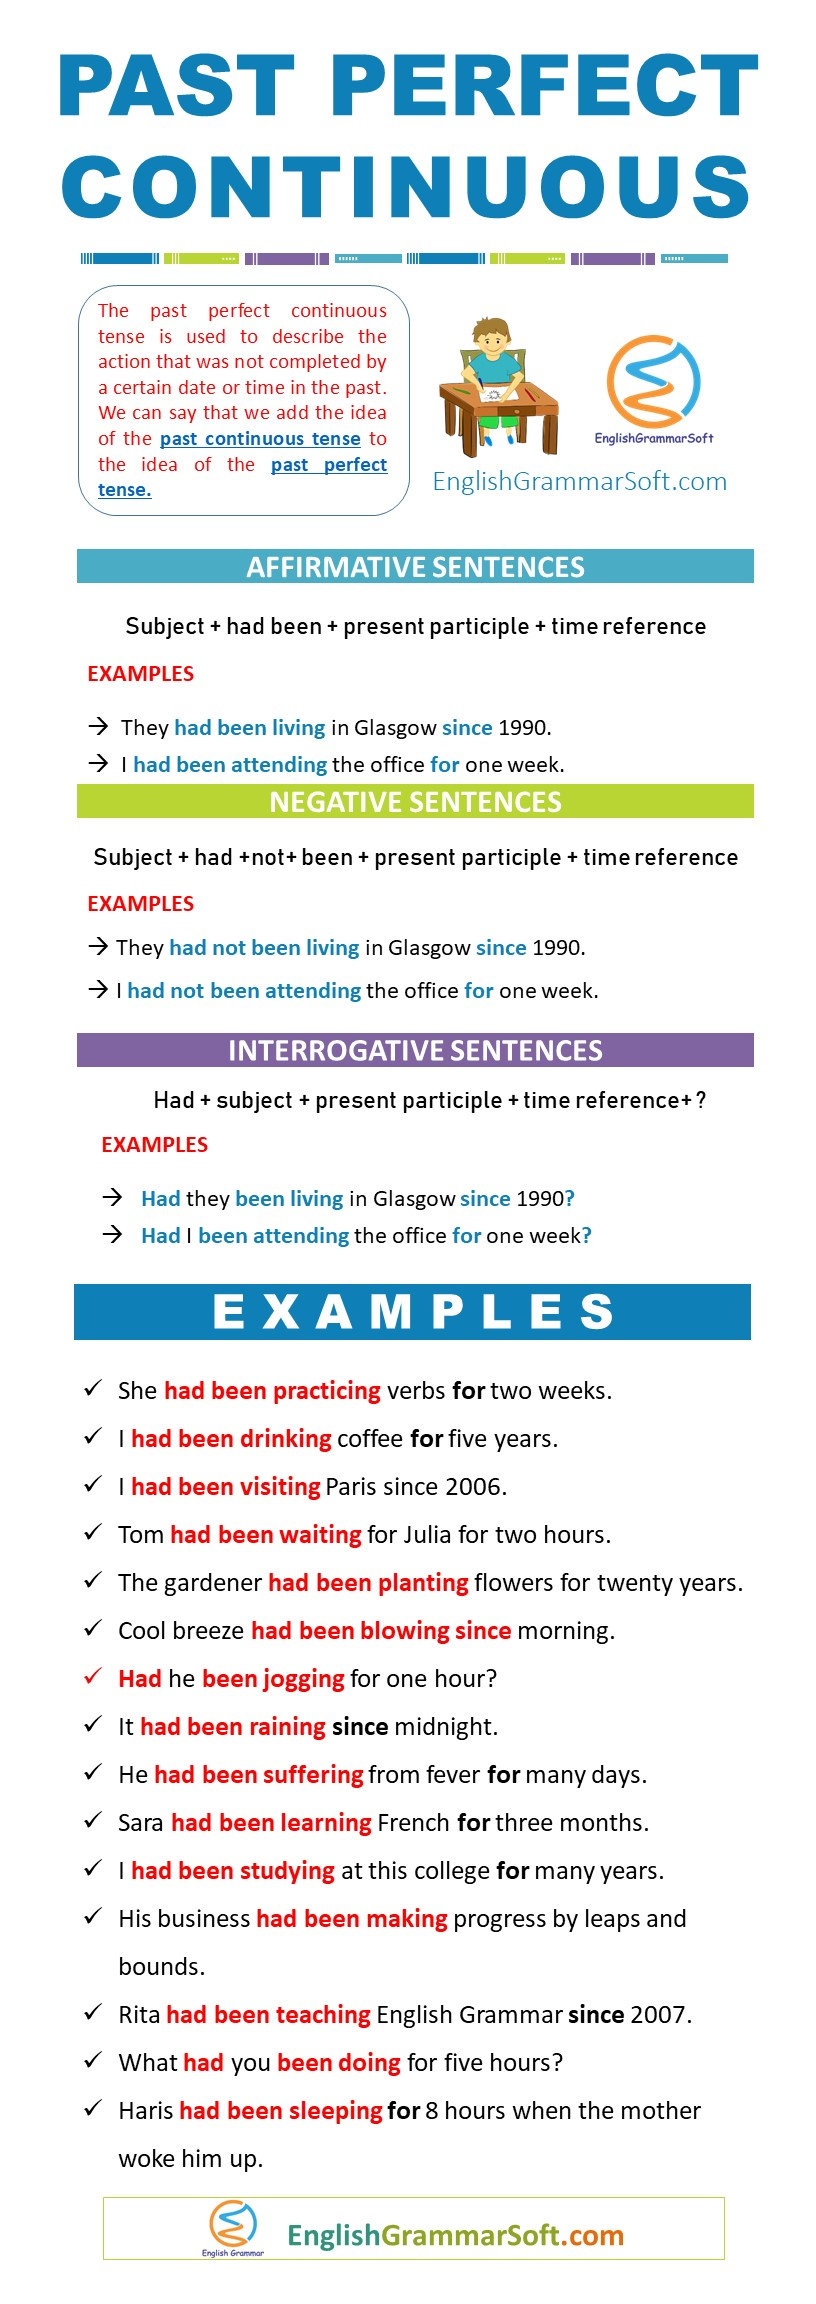 Past-Perfect-Continuous-Tense-with-Examp